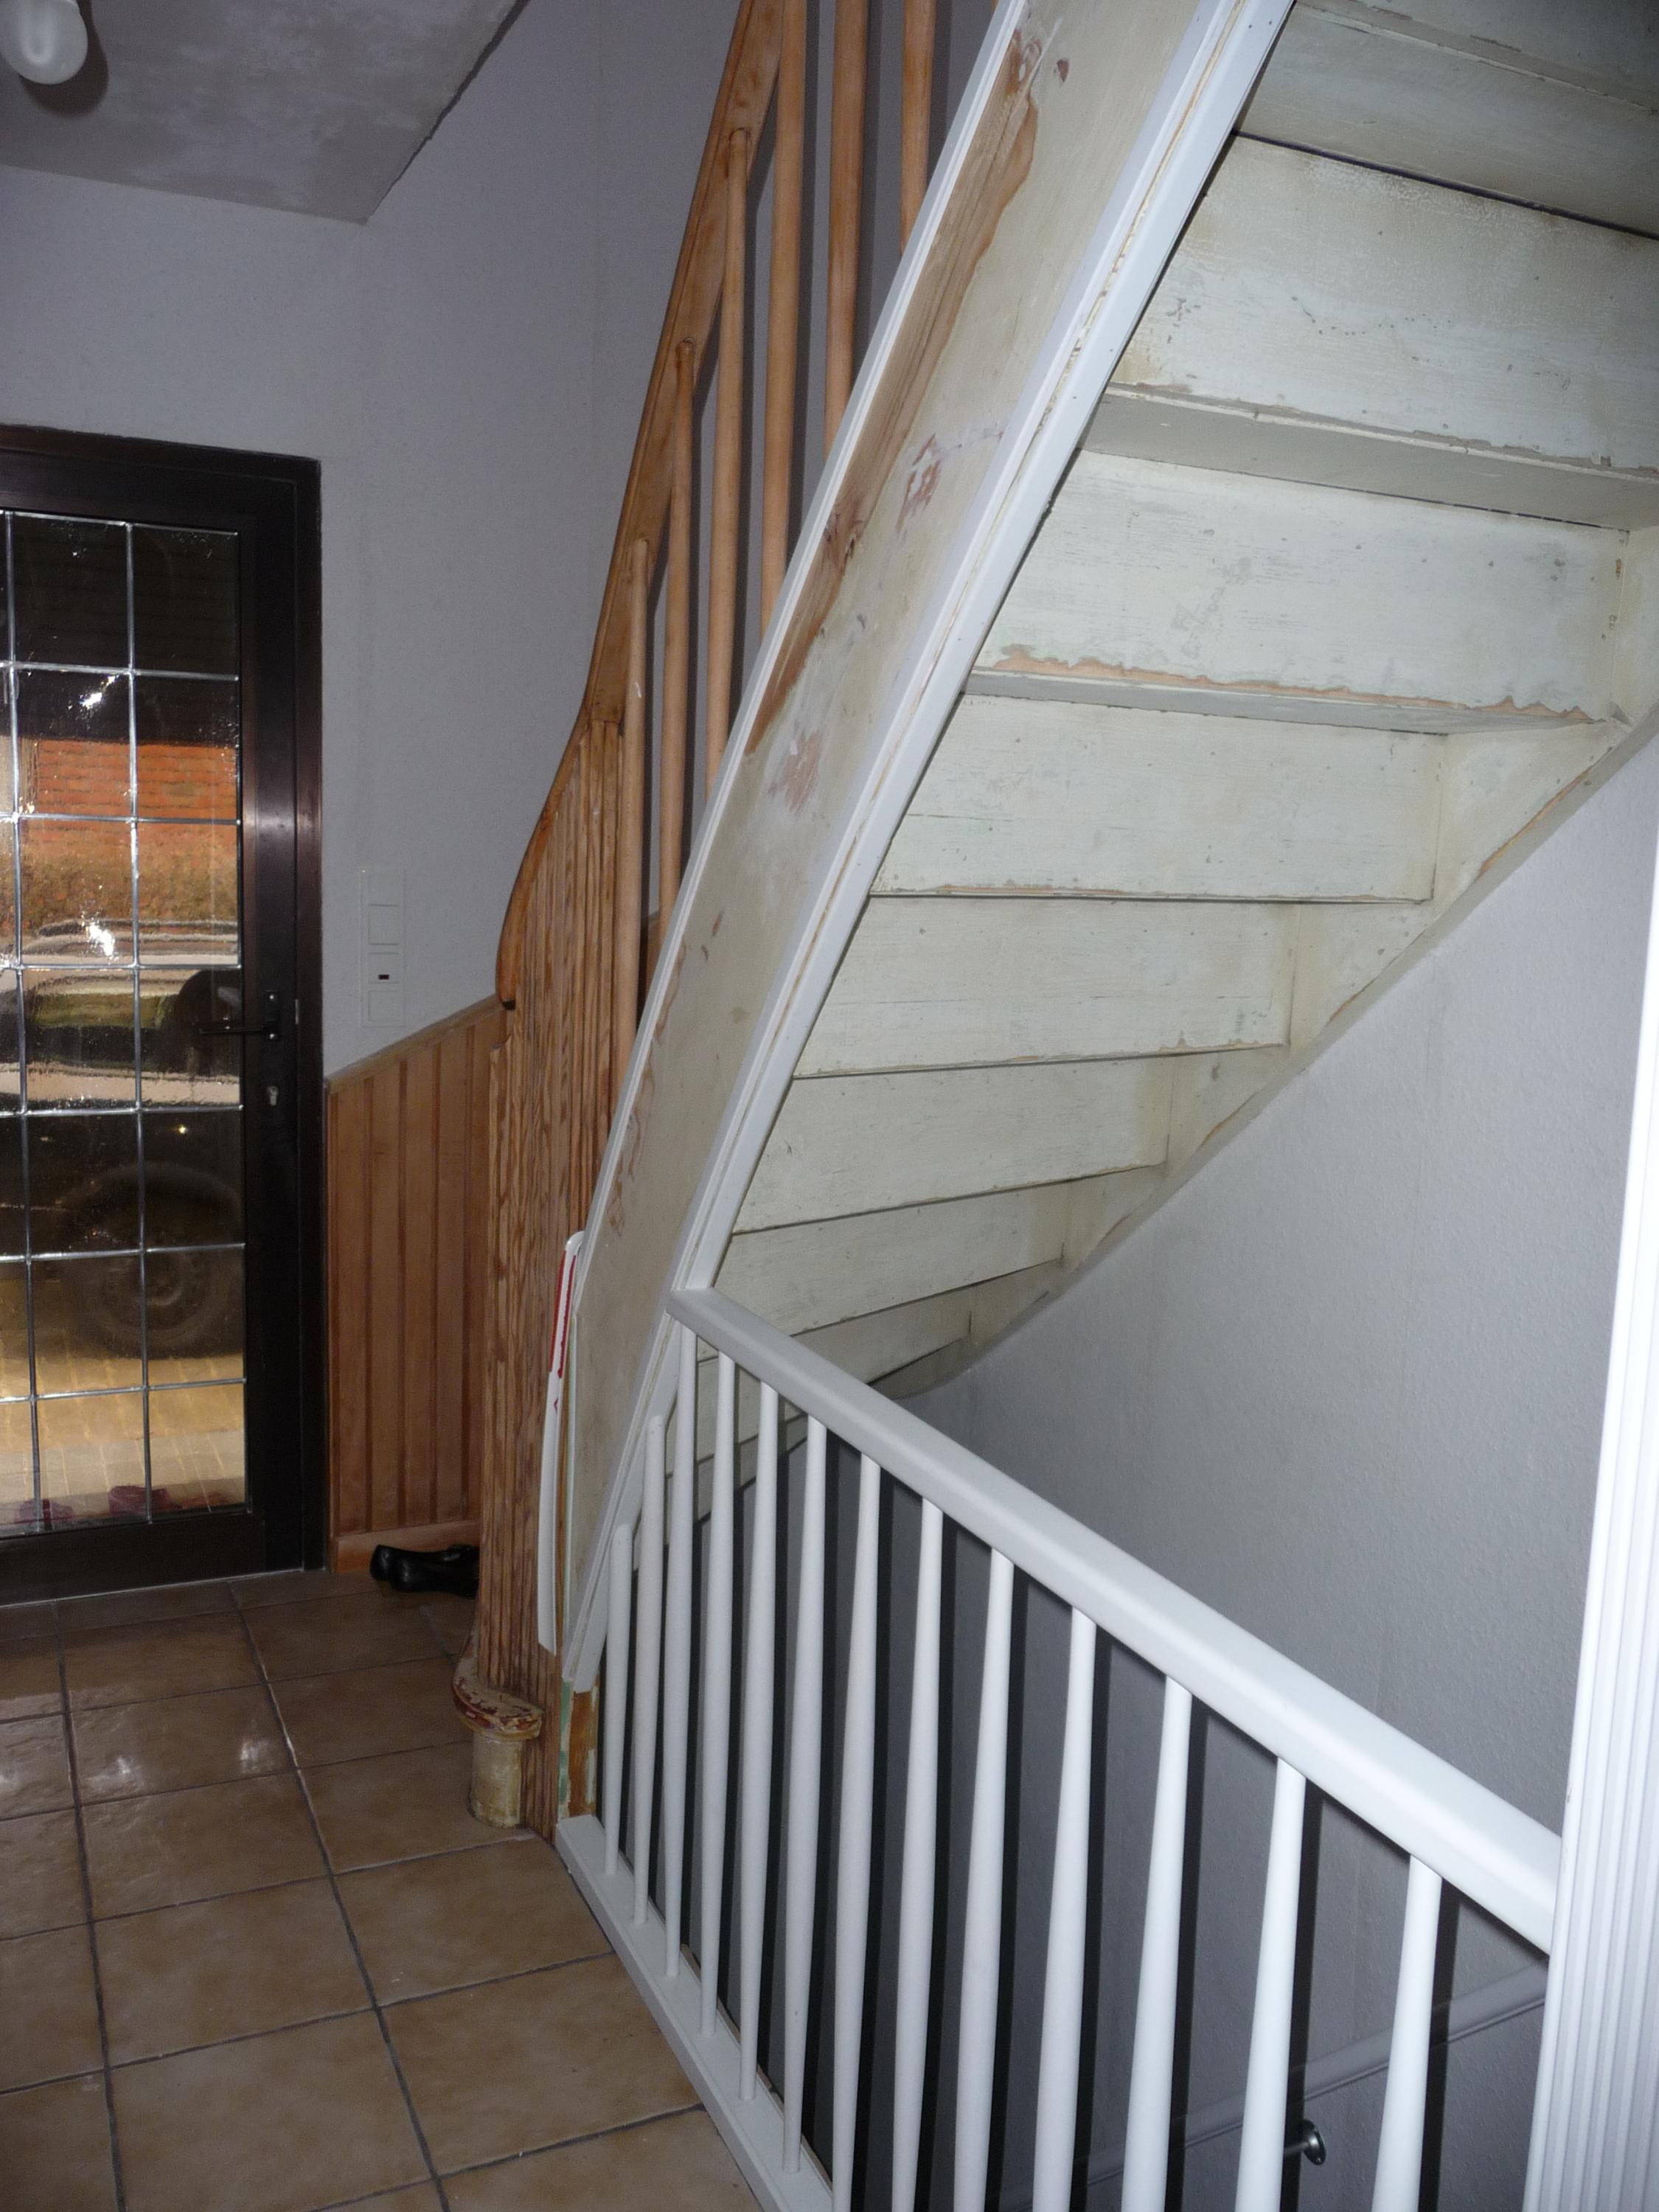 Treppe farbig lackieren